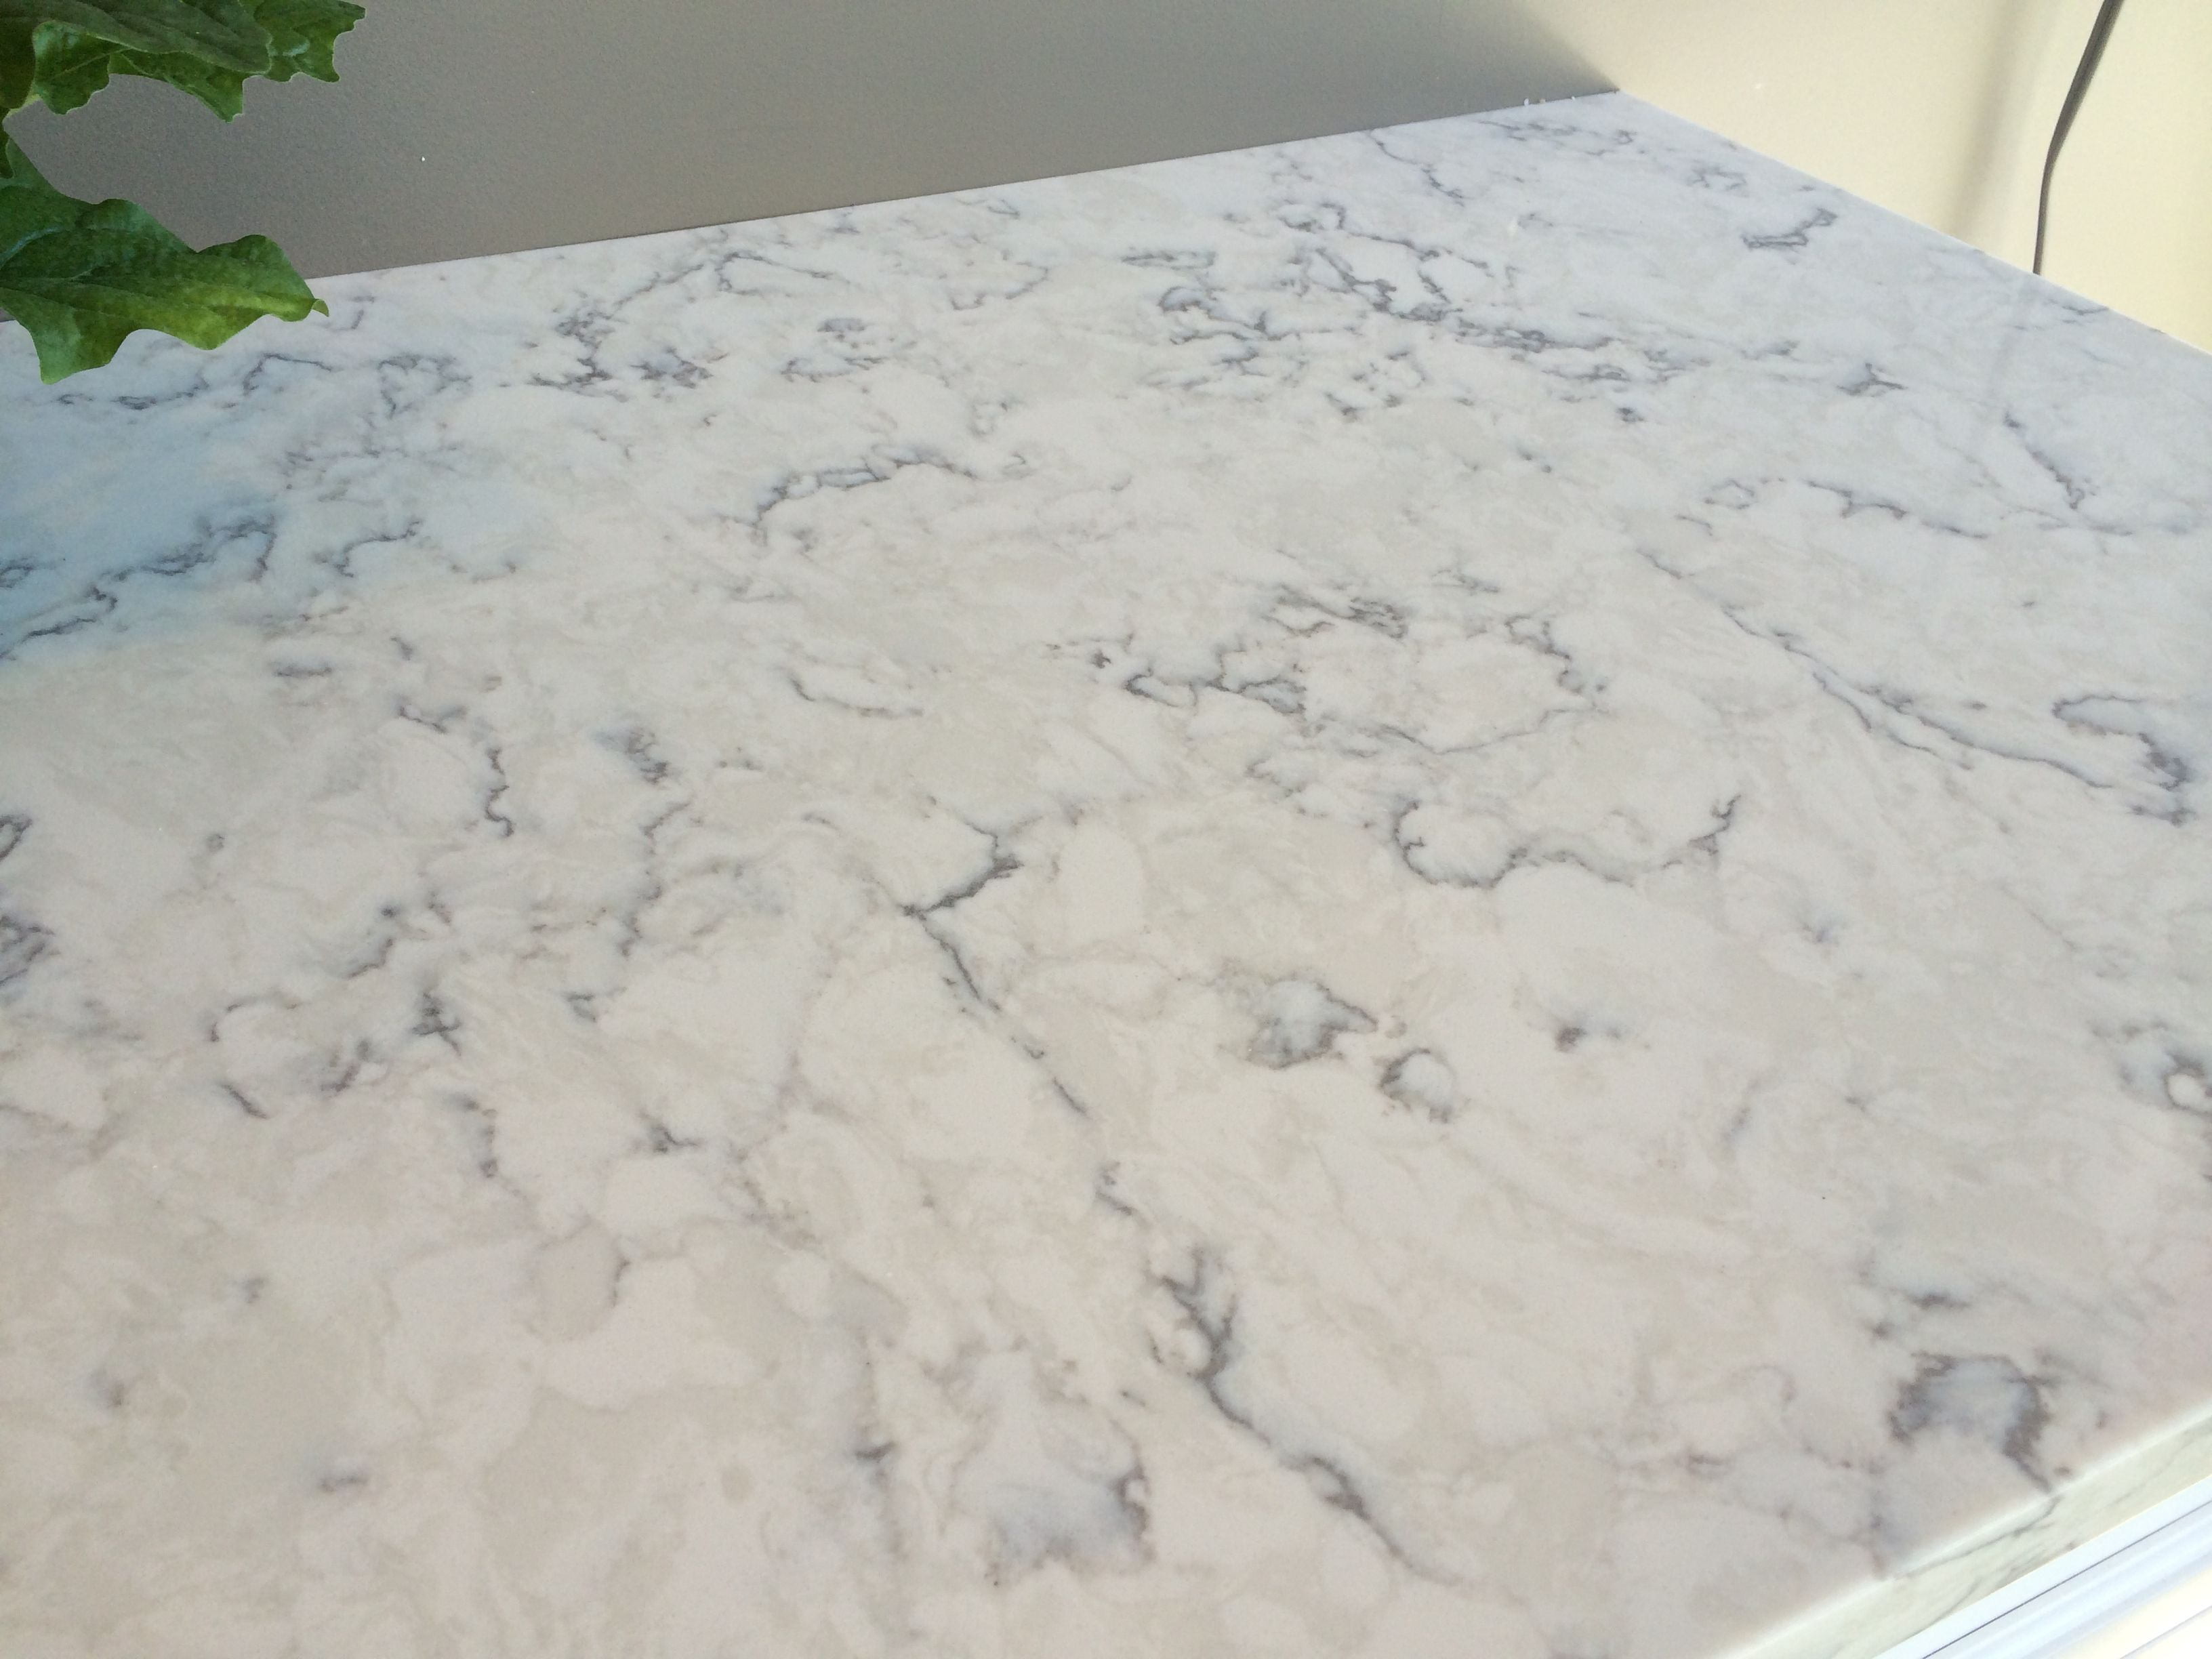 Quartz Countertops That Look Like Marble Reno Depot